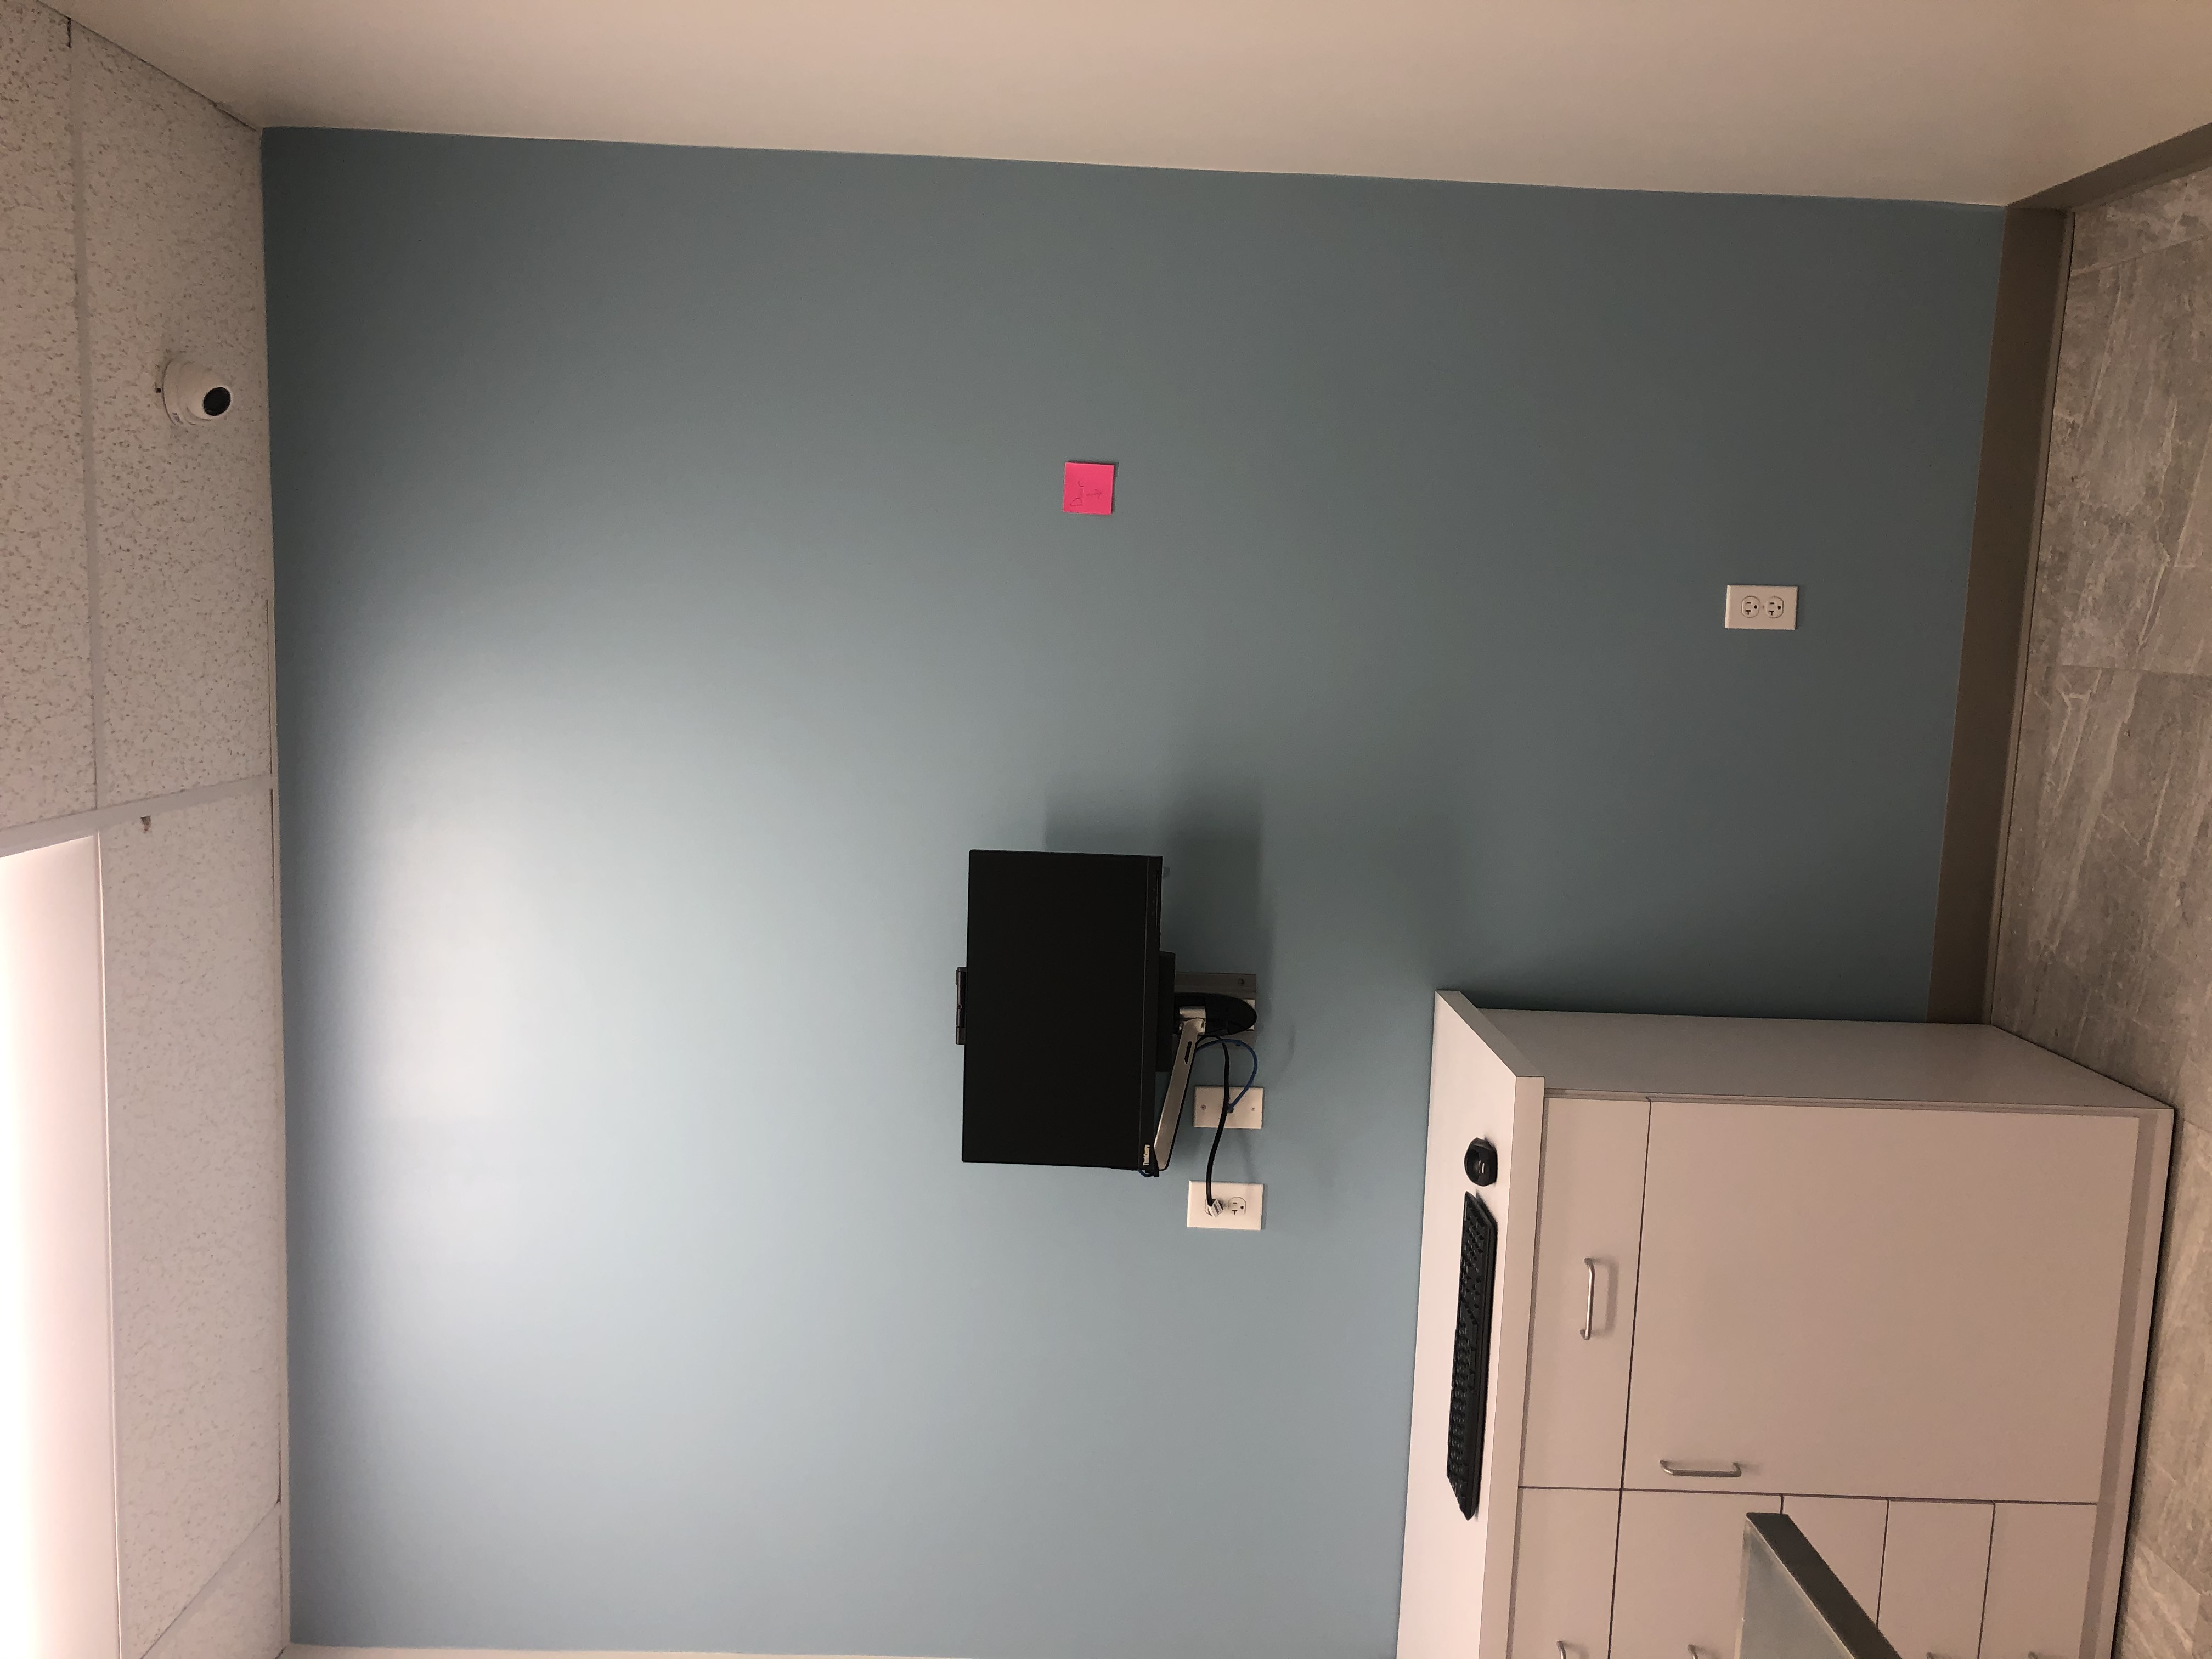 Wall Mount and Security Camera